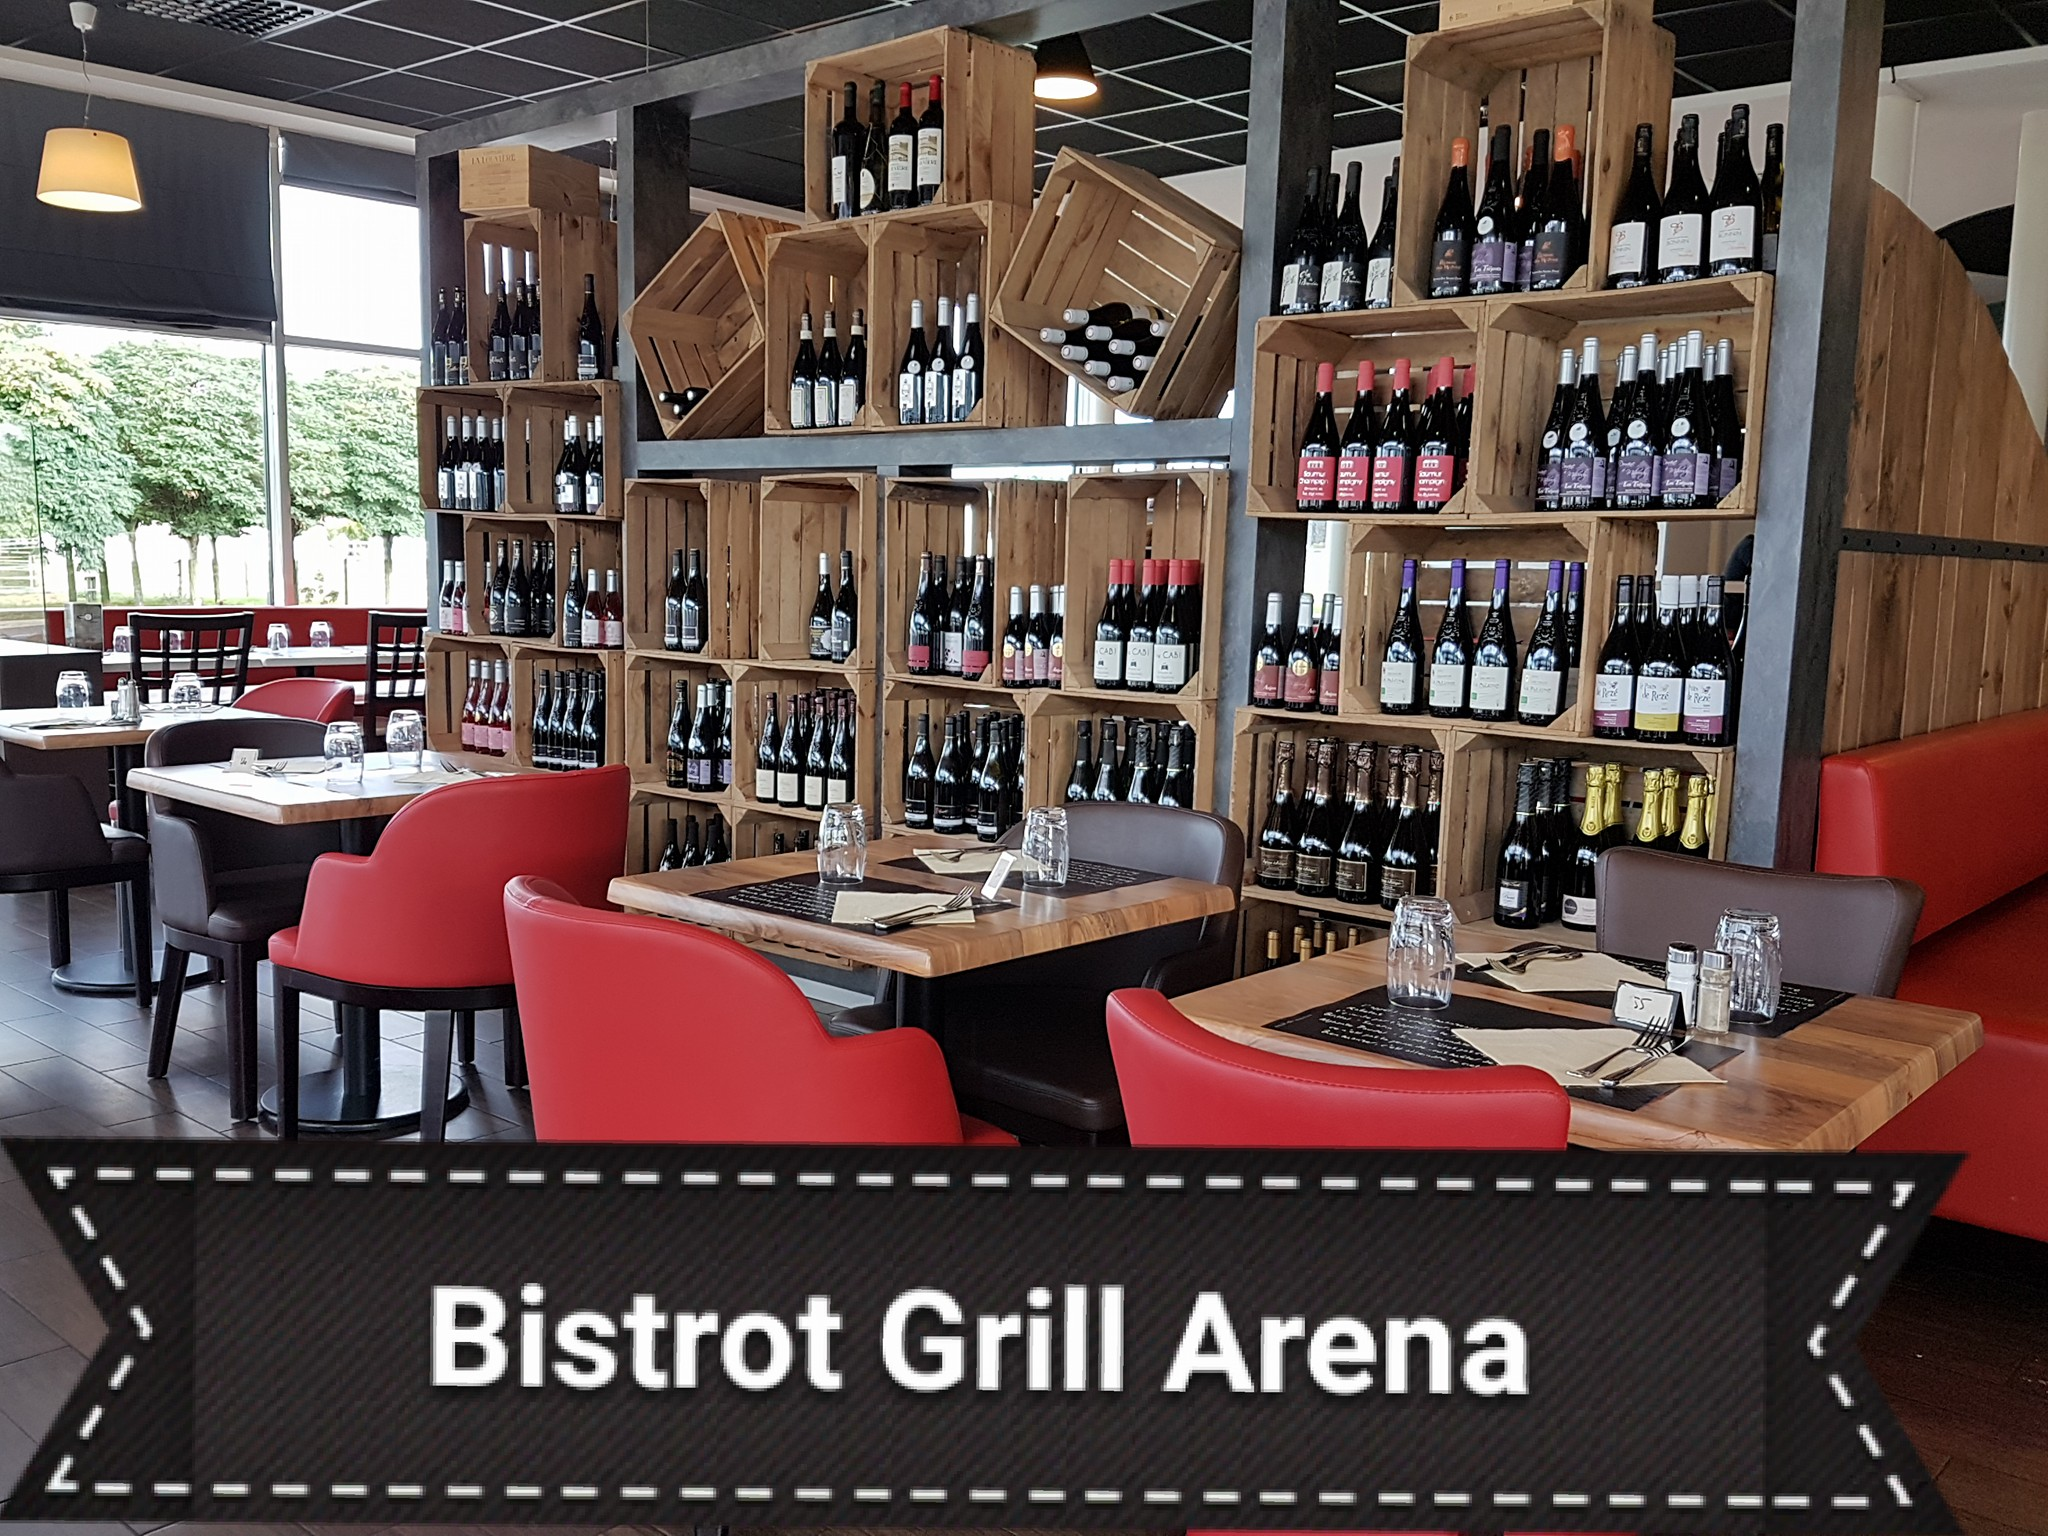 Bistrot grill l'Arena